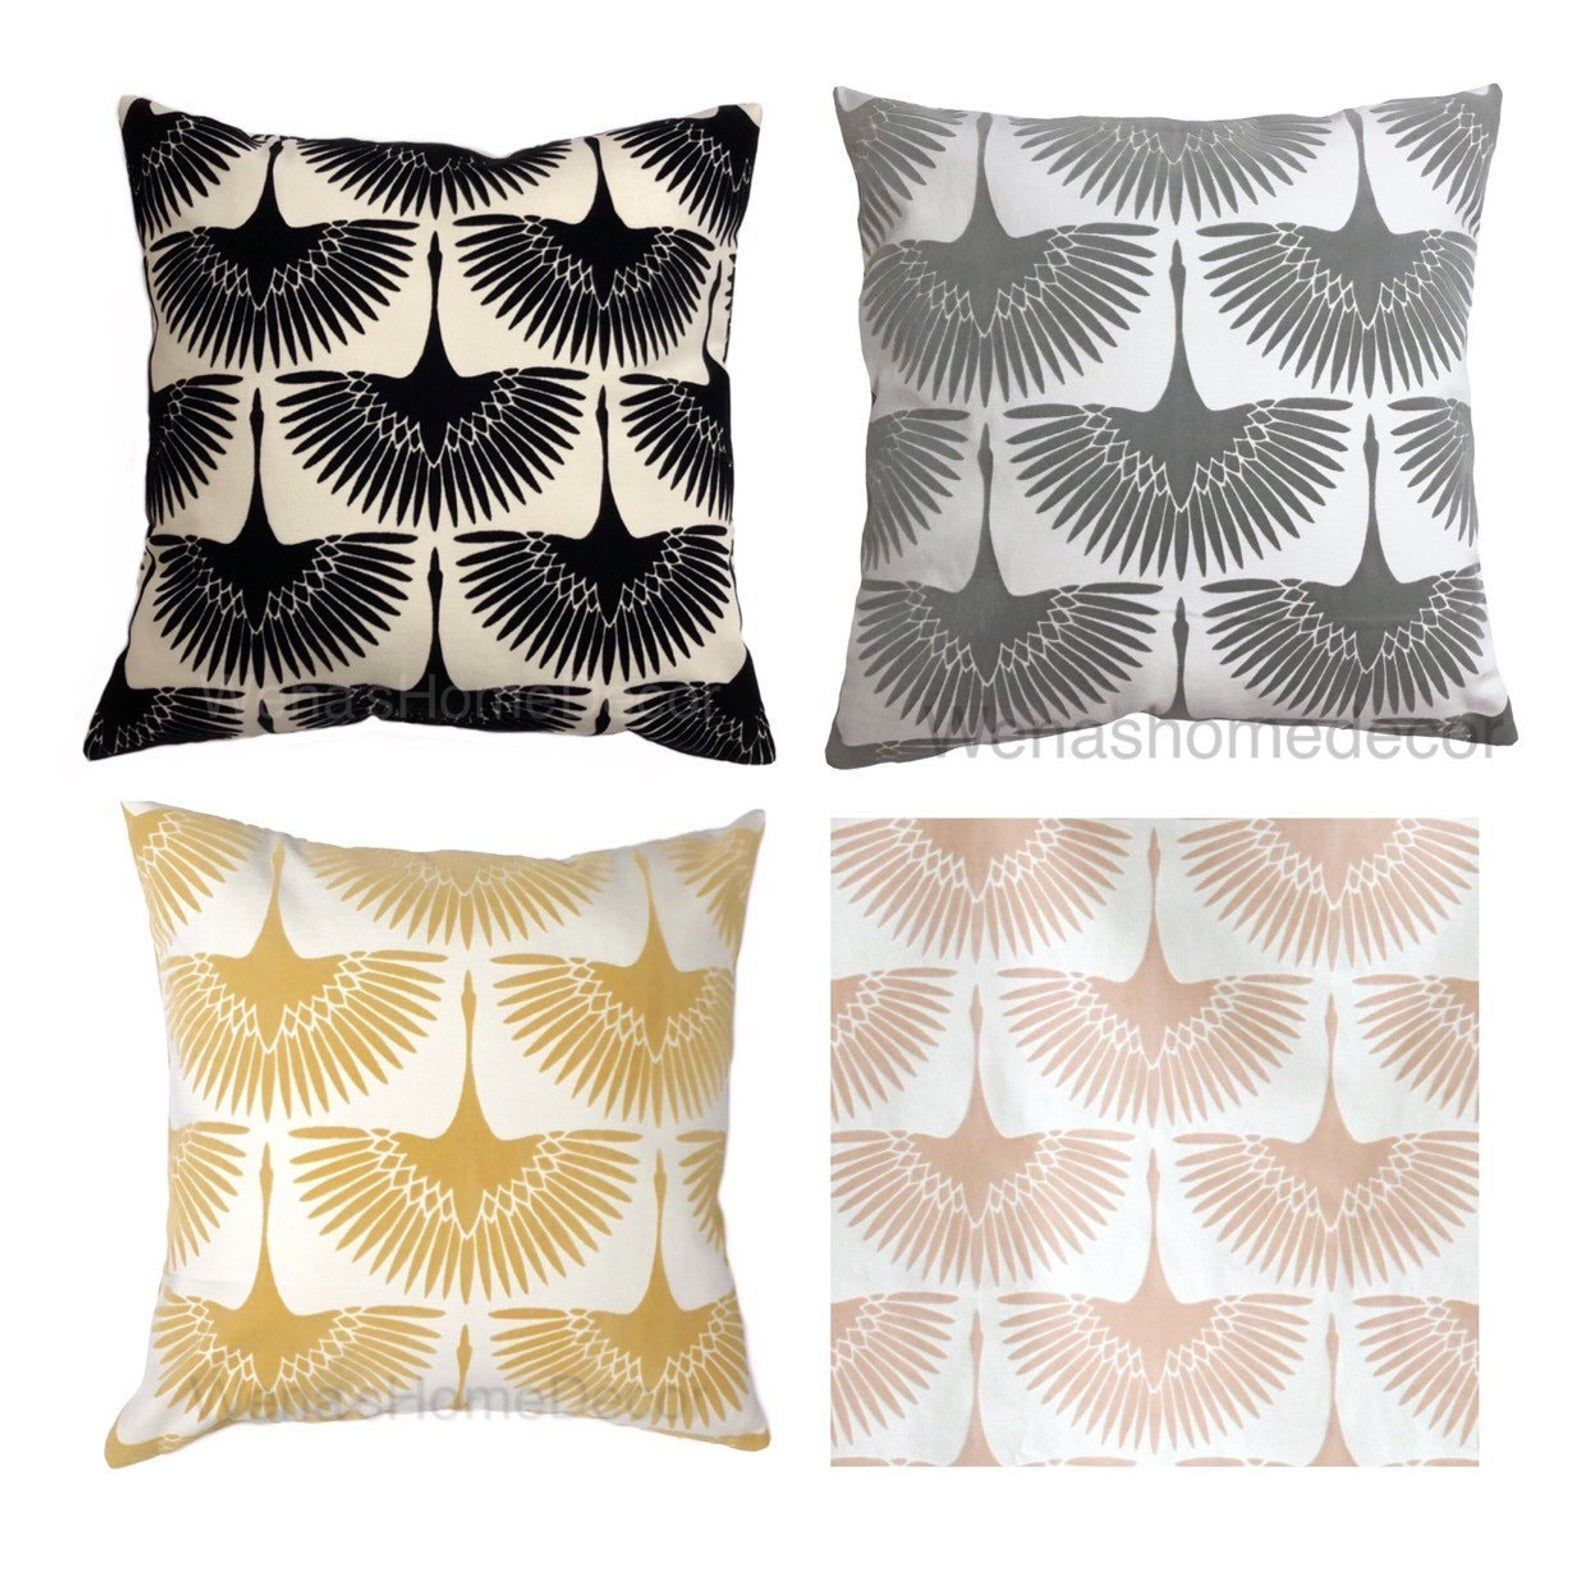 Double Sided Genevieve Gorder Flock Velvet Onyx Pillow Cover, Home Decorative Pillow Cover, A...#cover #decorative #double #flock #genevieve #gorder #home #onyx #pillow #sided #velvet